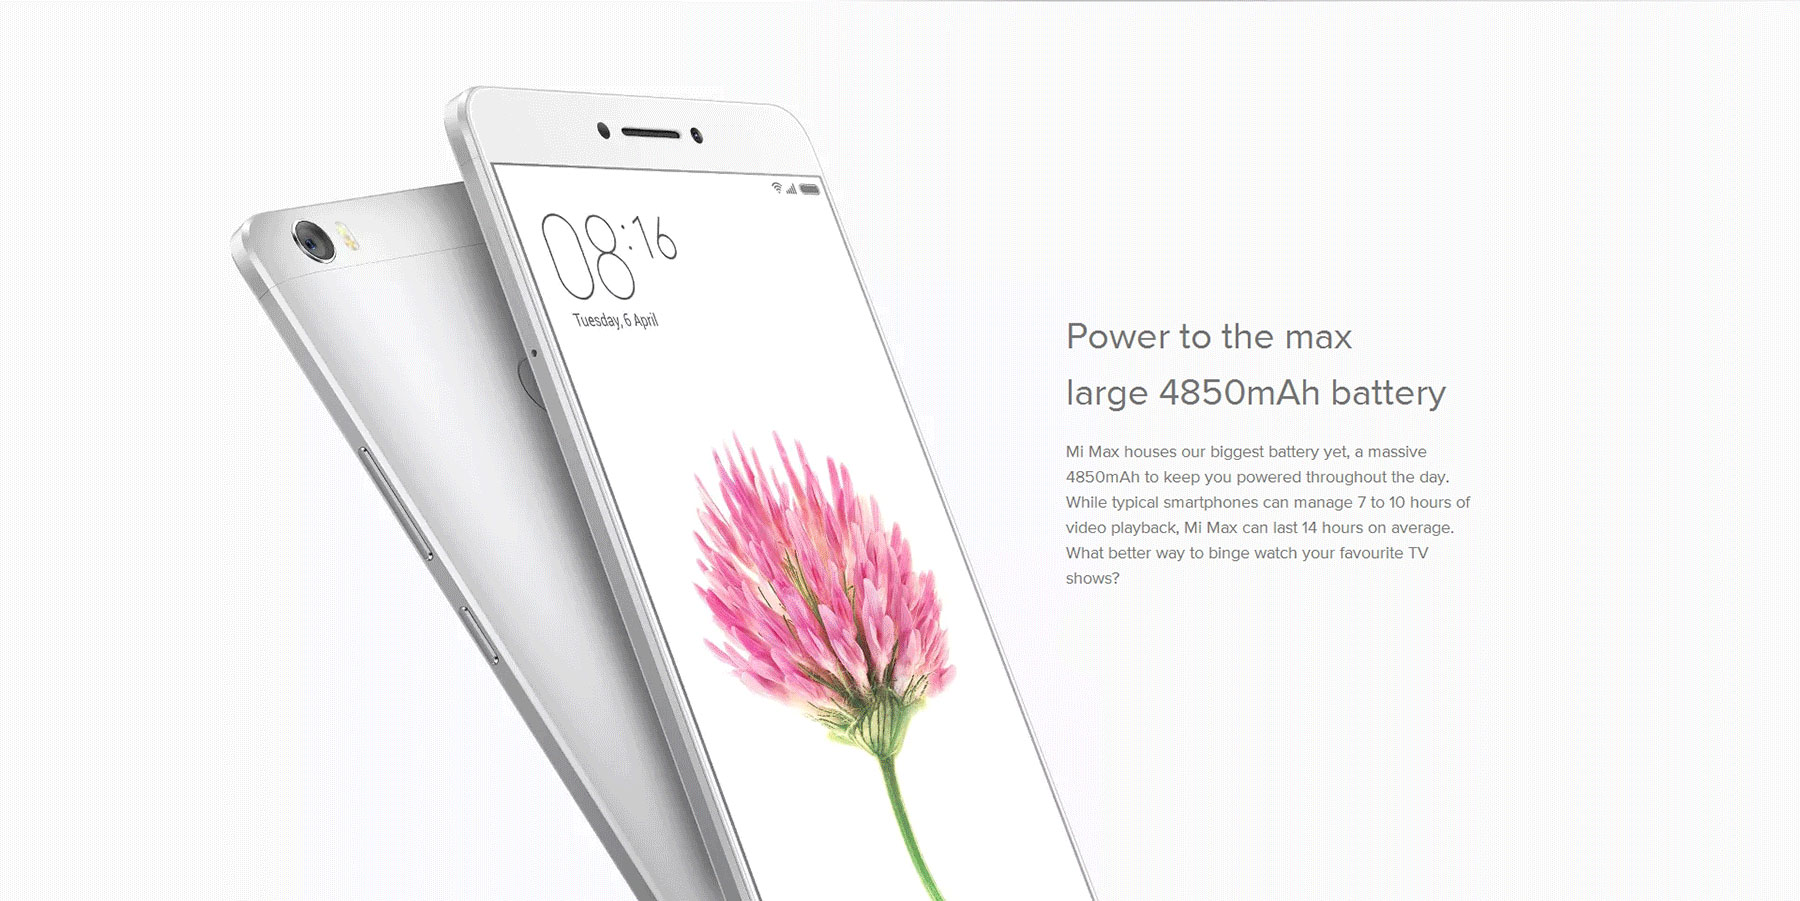 Xiaomi Mi Max 6.44 inch 4G Phablet Android 6.0 Qualcomm Snapdragon 650 64bit Hexa Core 1.8GHz 3GB RAM 32GB ROM 16.0MP Camera 4850mAh 2.5D Arc Glass Screen